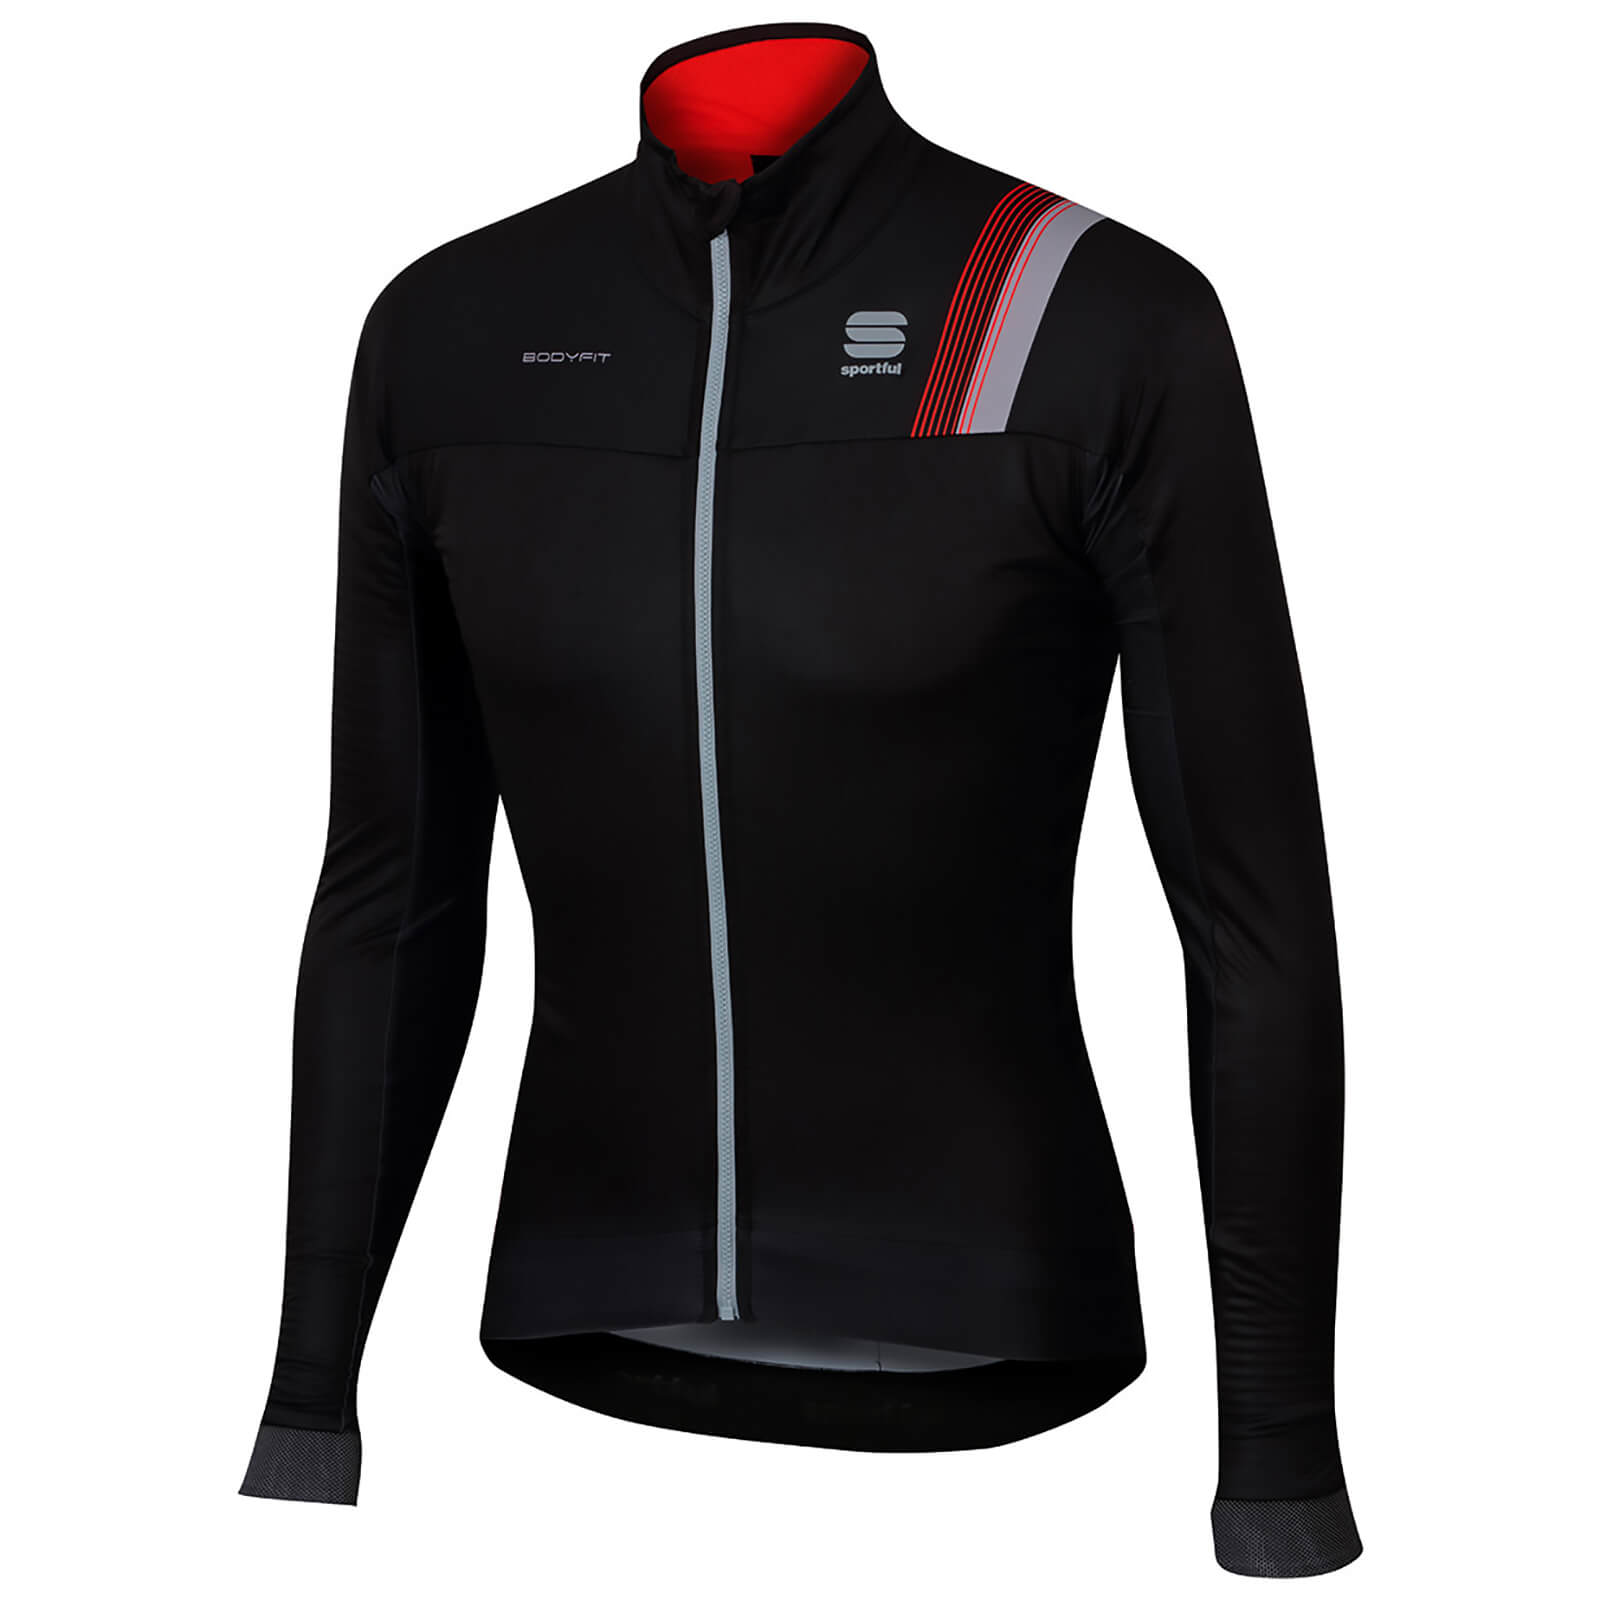 Sportful BodyFit Pro Thermal Jacket - Black